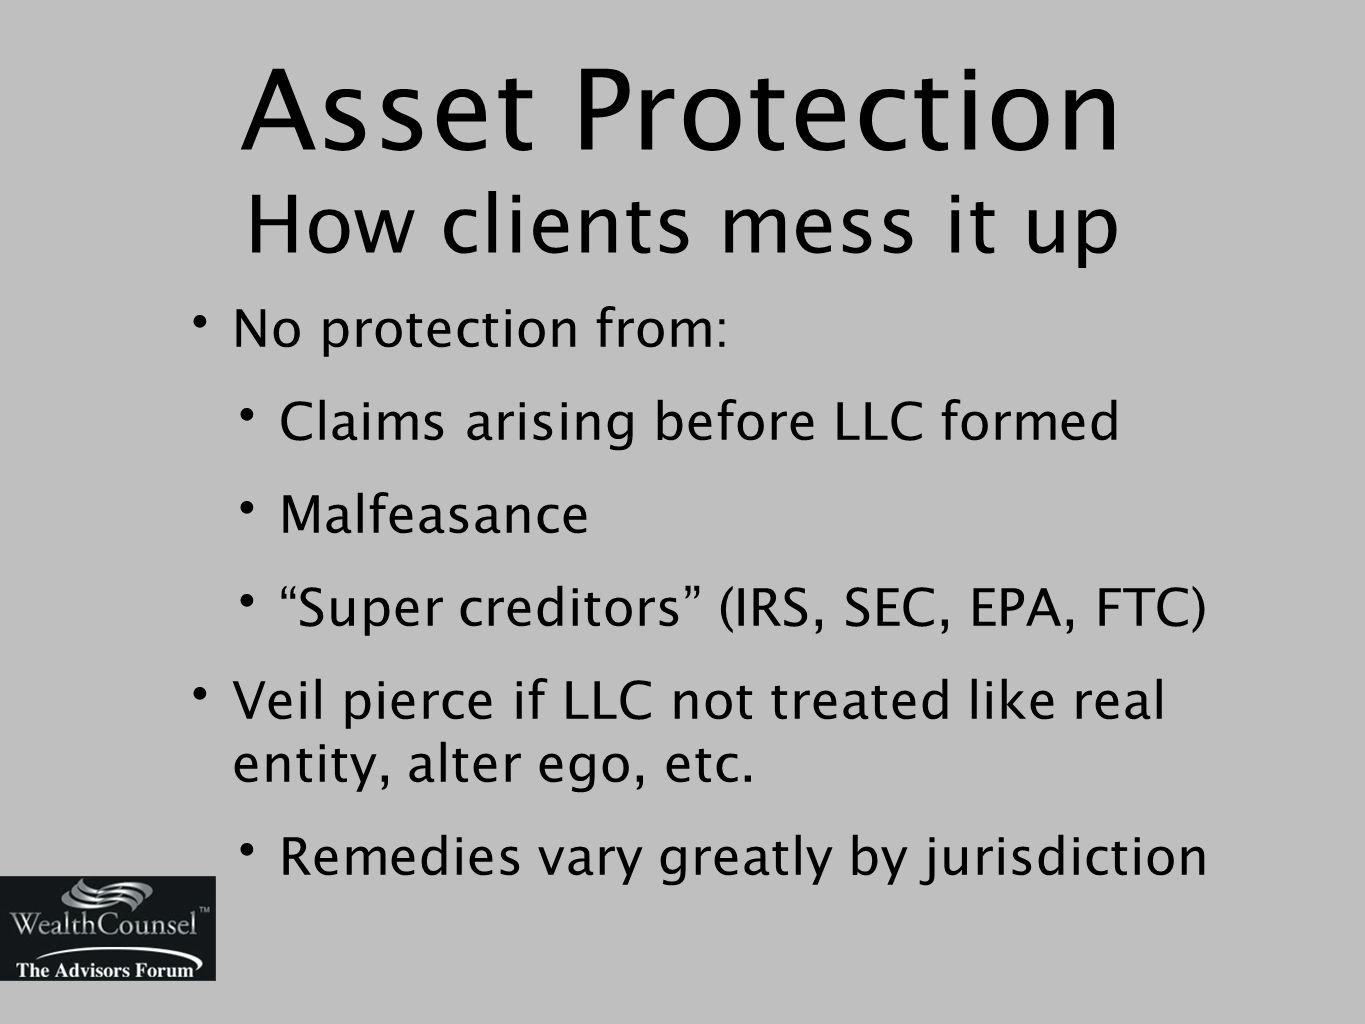 Asset Protection How clients mess it up No protection from: Claims arising before LLC formed Malfeasance Super creditors (IRS, SEC, EPA, FTC) Veil pierce if LLC not treated like real entity, alter ego, etc.